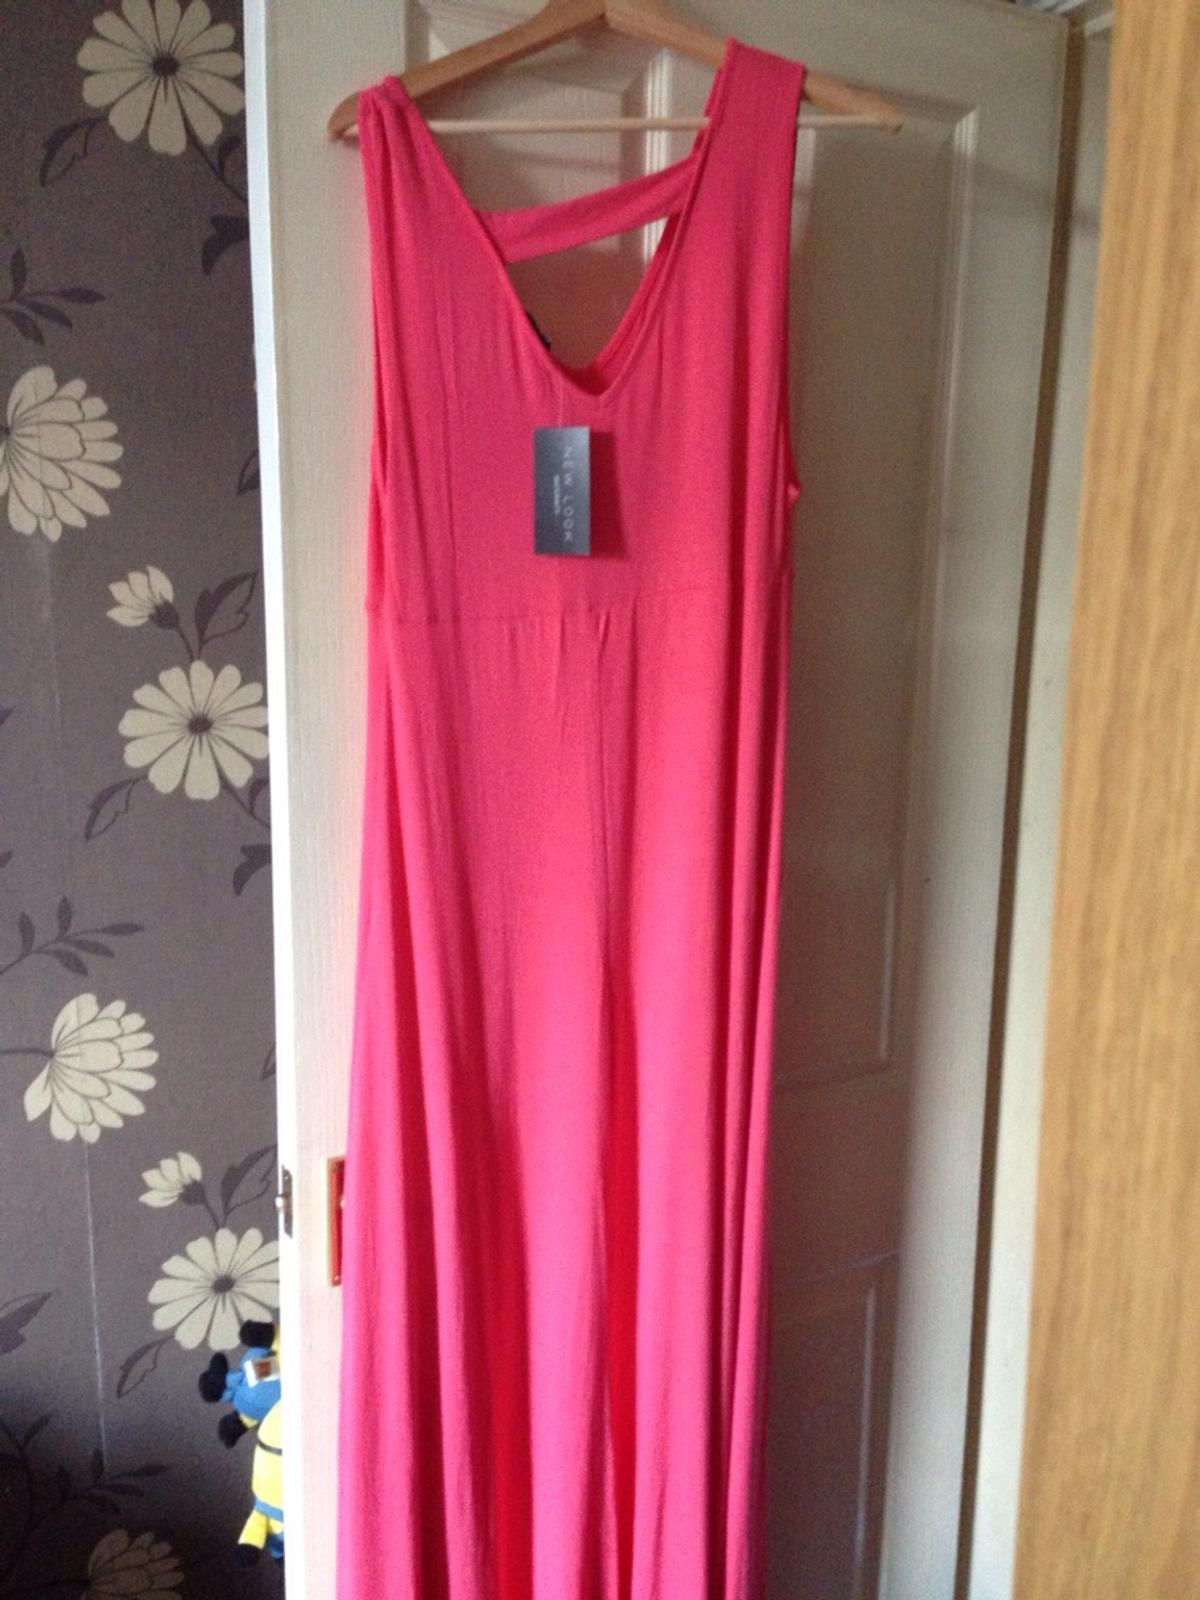 6aac9bcda12e3 New look maternity maxi dress size 14 in S41 Whittington for £4.00 ...